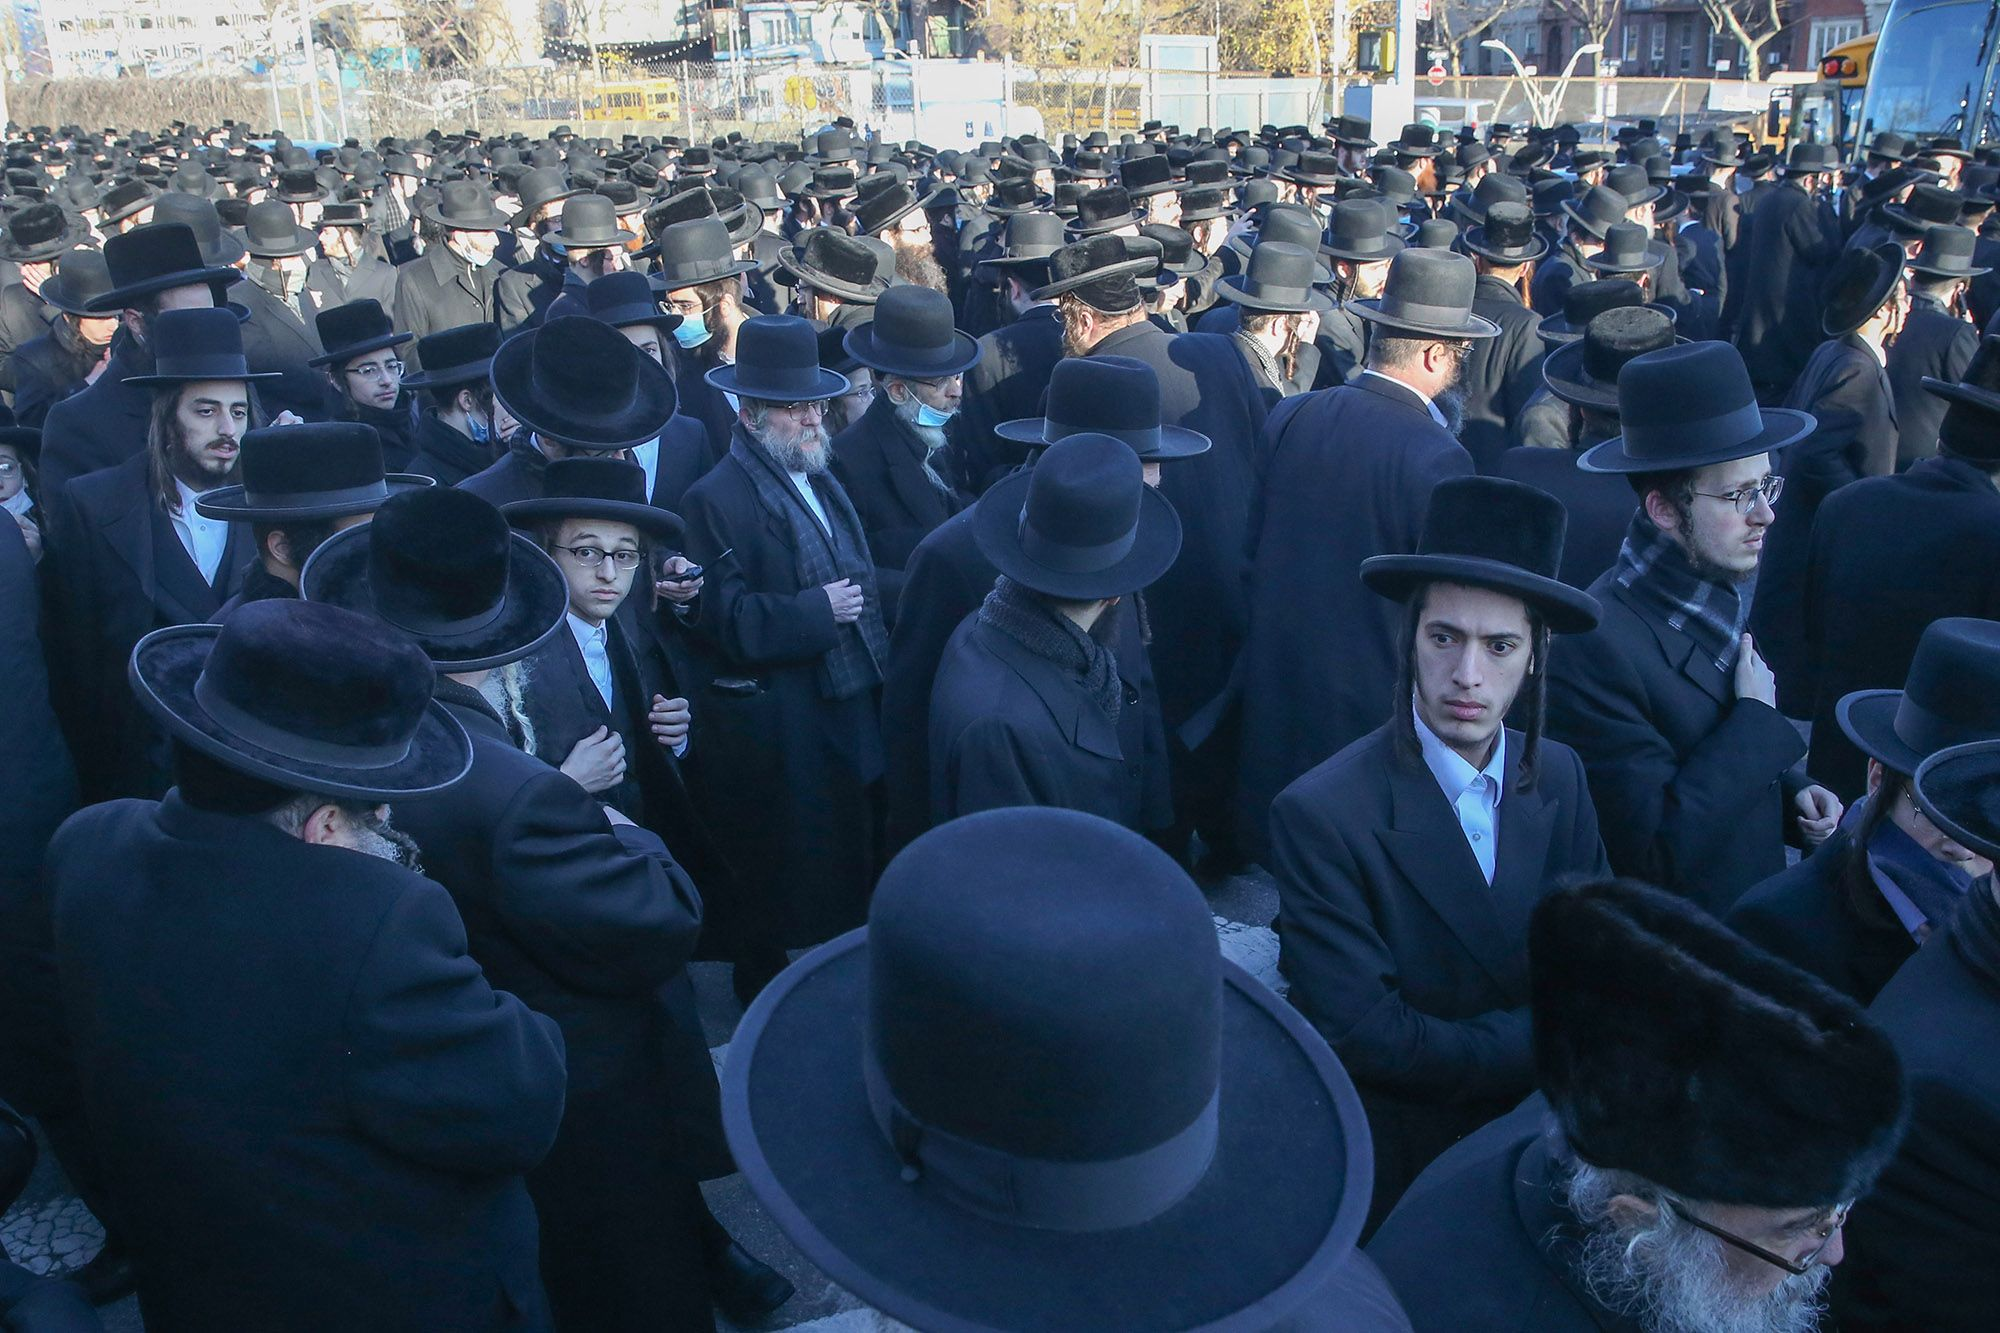 NYC synagogue foiled over giant wedding succeeds in holding jam-packed funeral